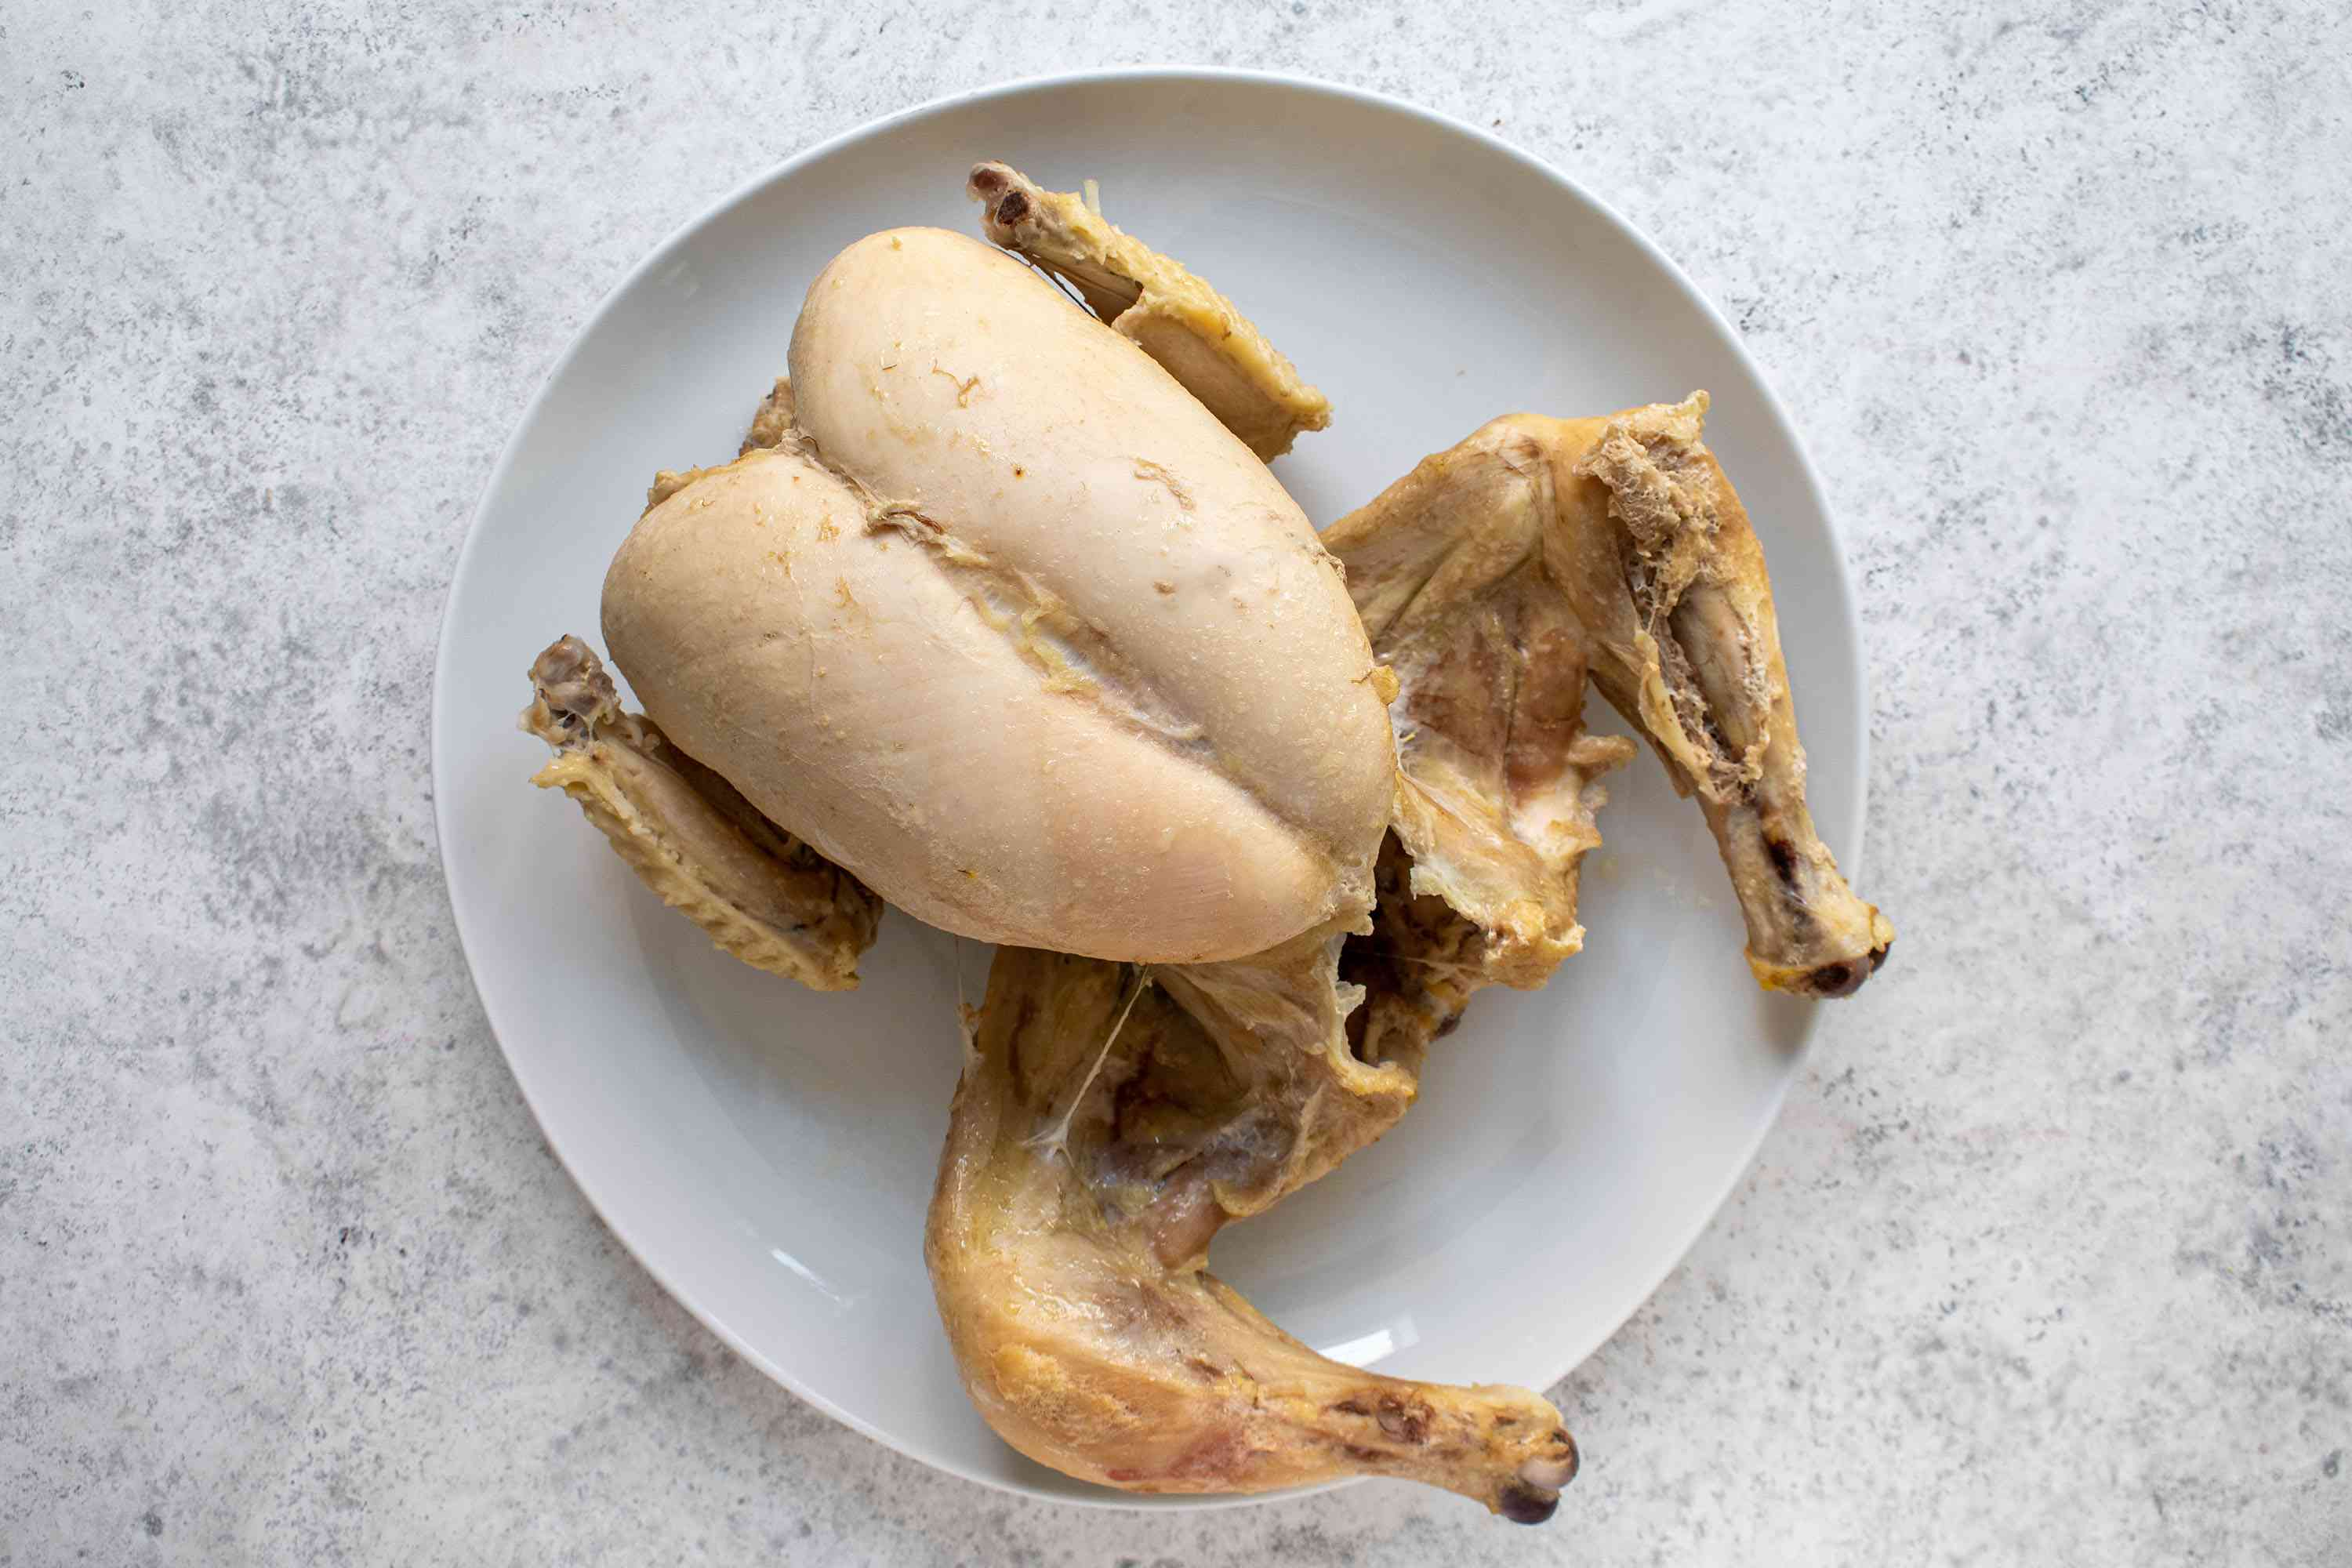 boiled whole chicken on a plate